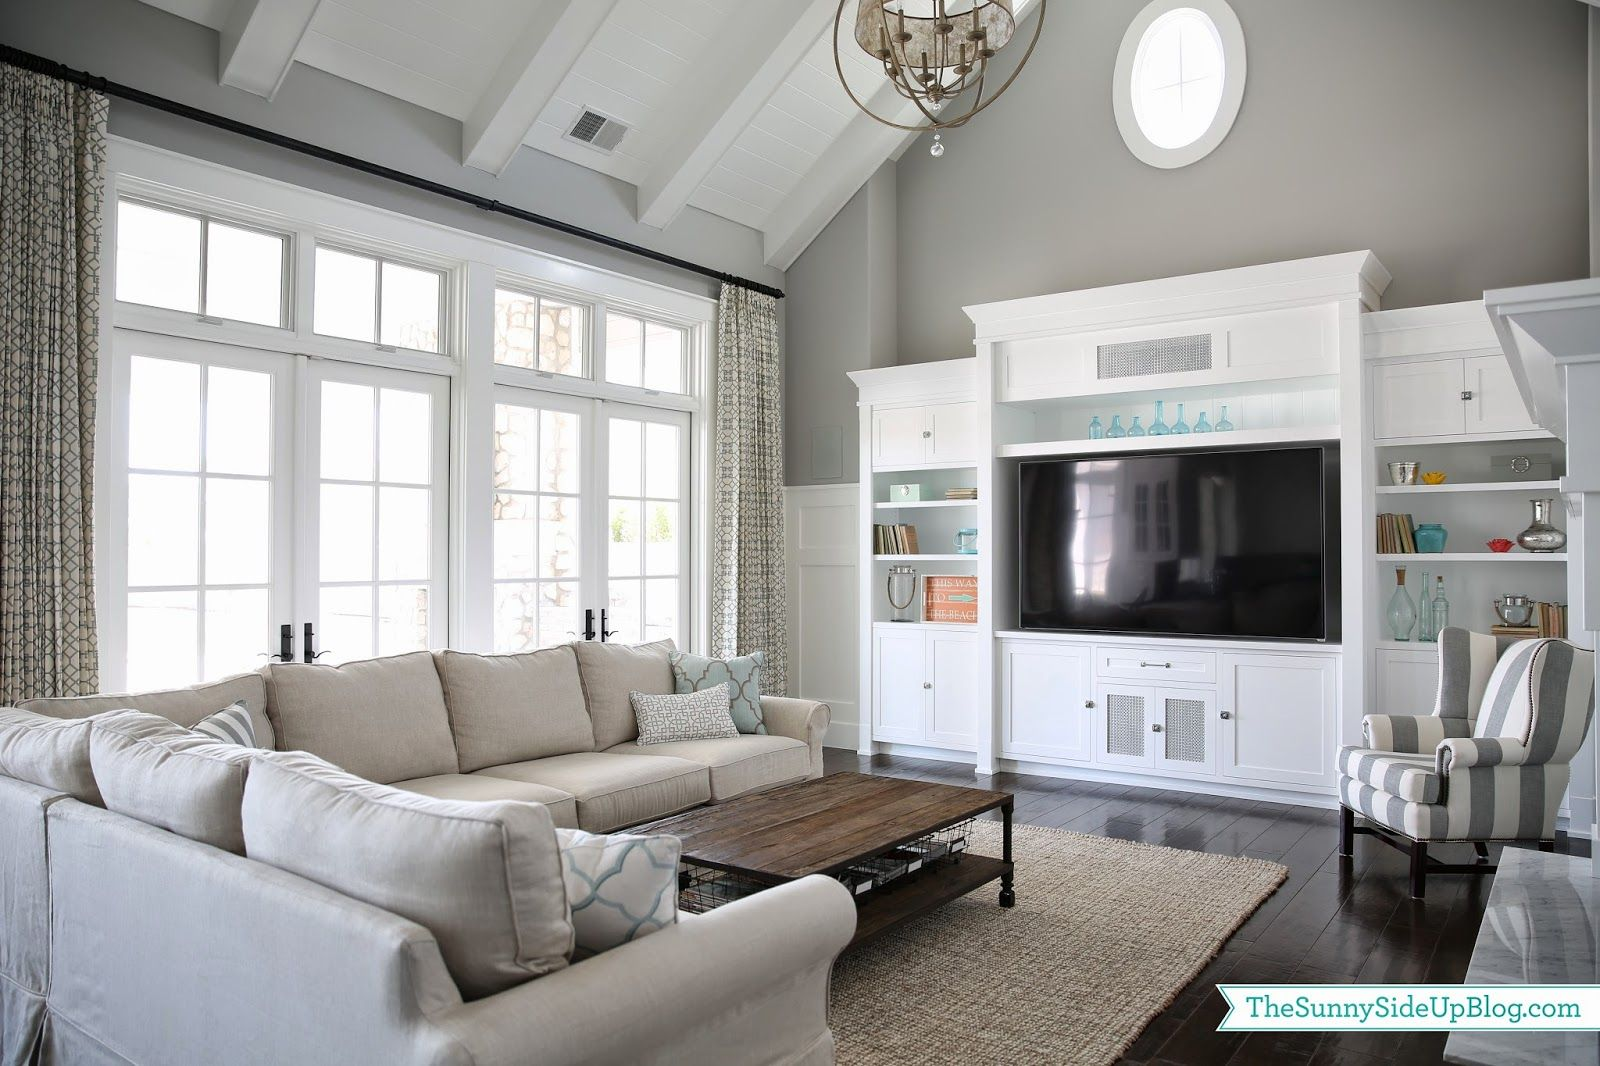 Living Room Family Room Pics 1000 images about family room ideas on pinterest concept board rooms and living rooms